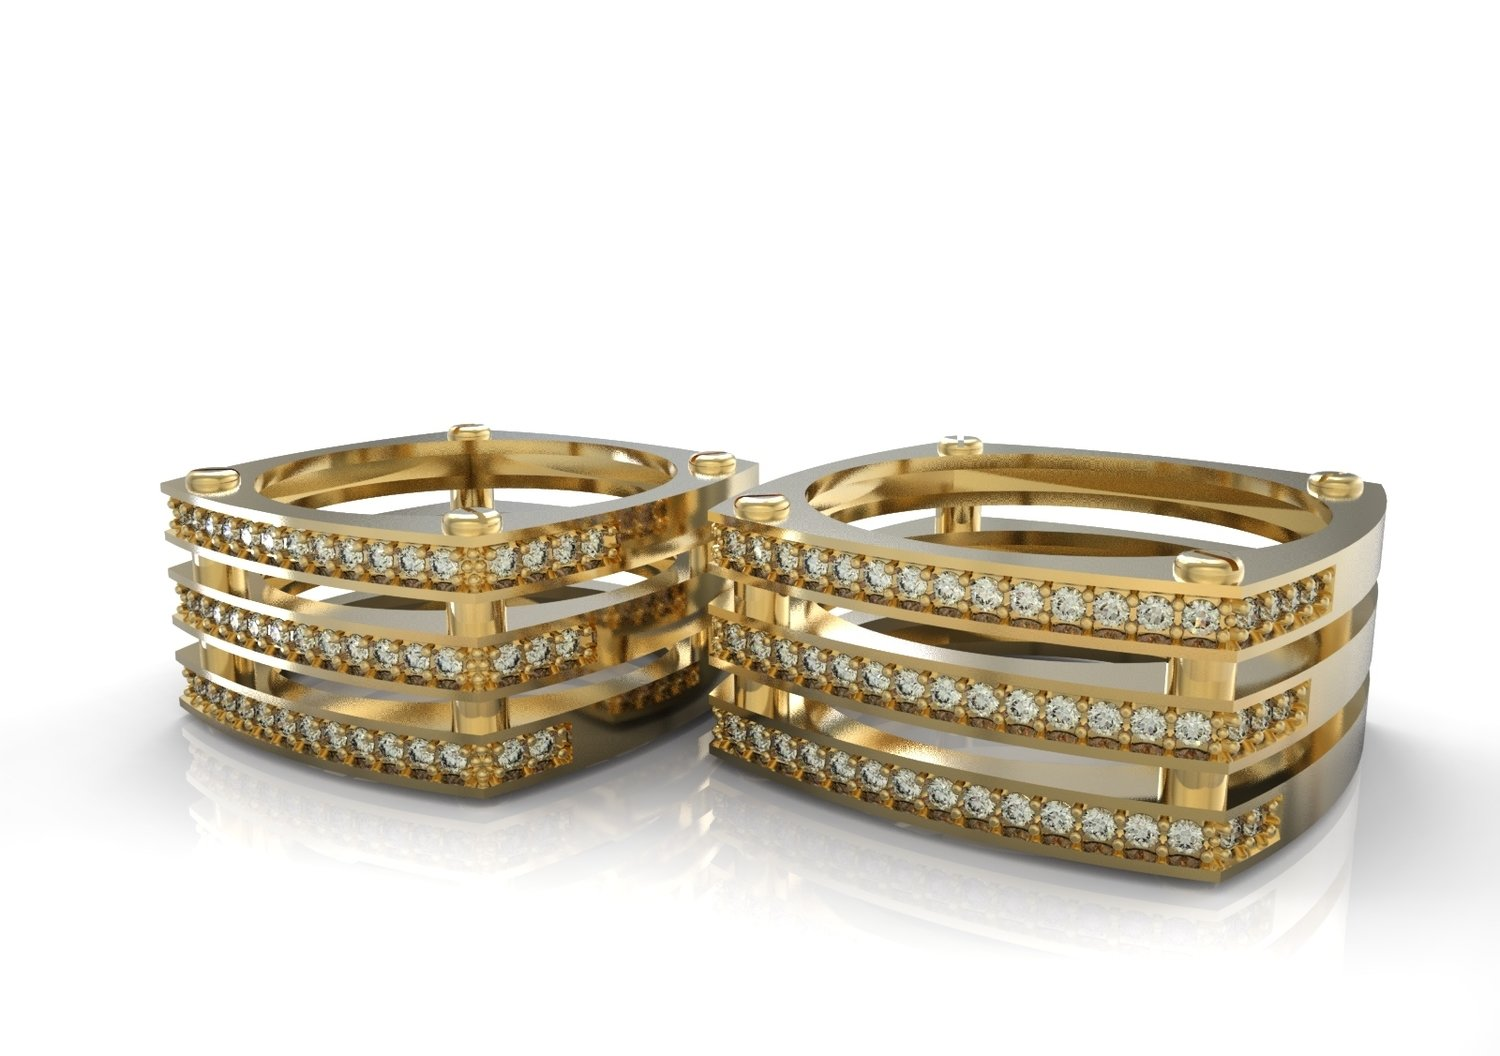 3d Model of Wedding Ring with Diamonds